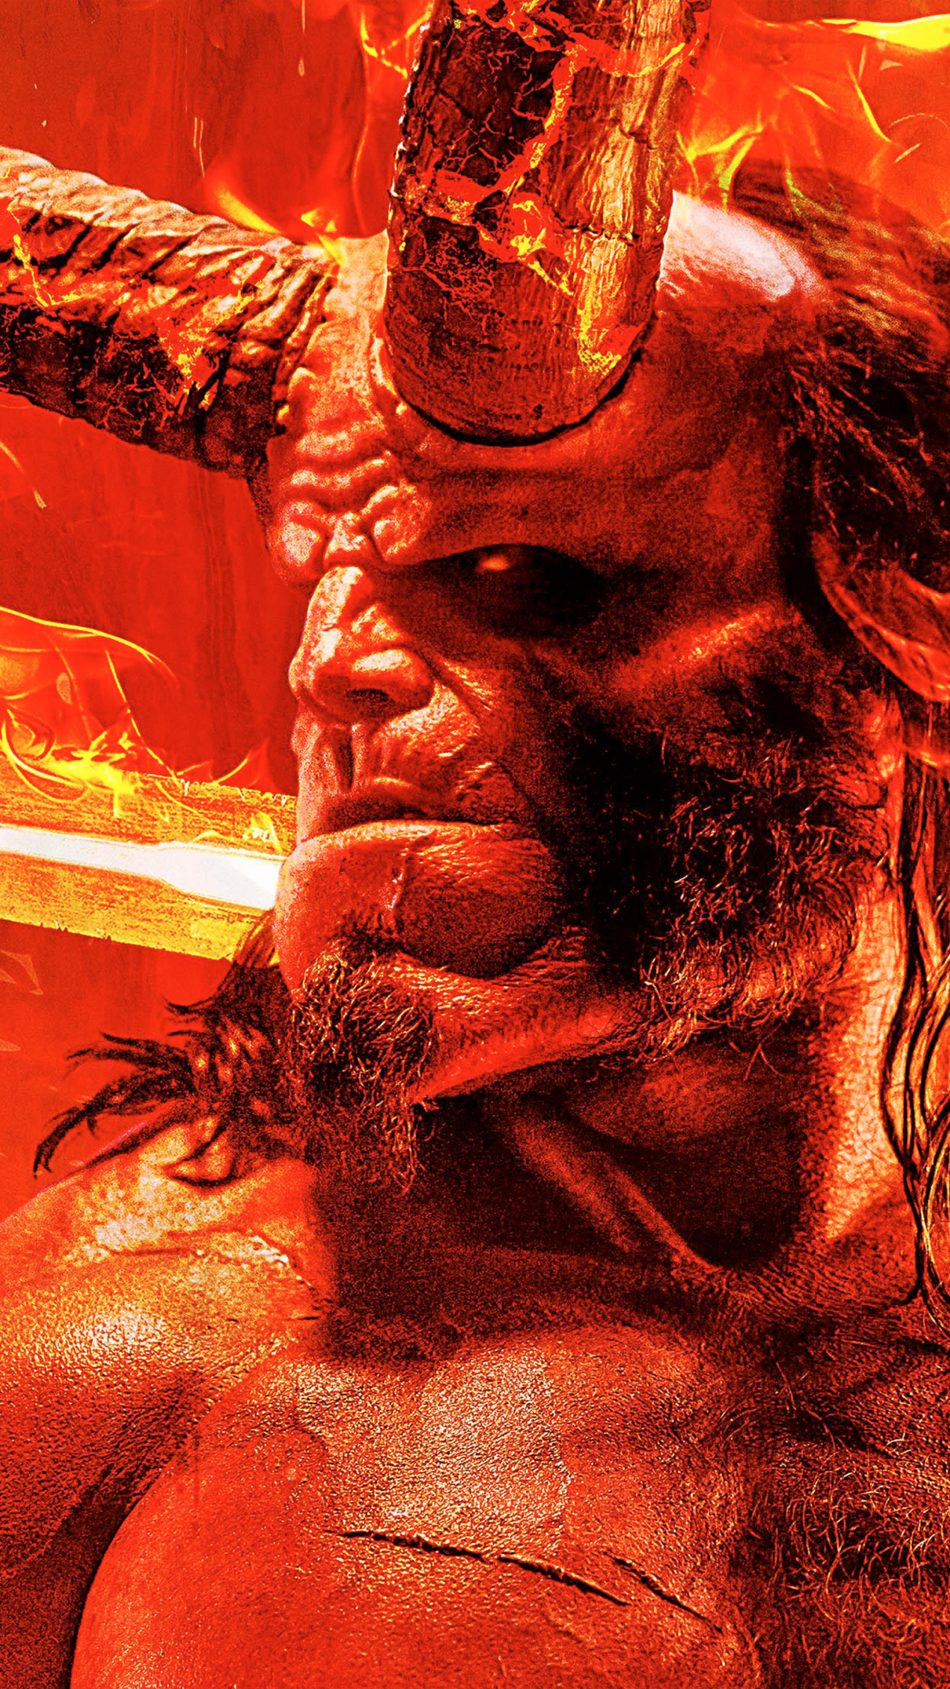 Download Hellboy 2019 Pure 4K Ultra HD Mobile Wallpaper 950x1689